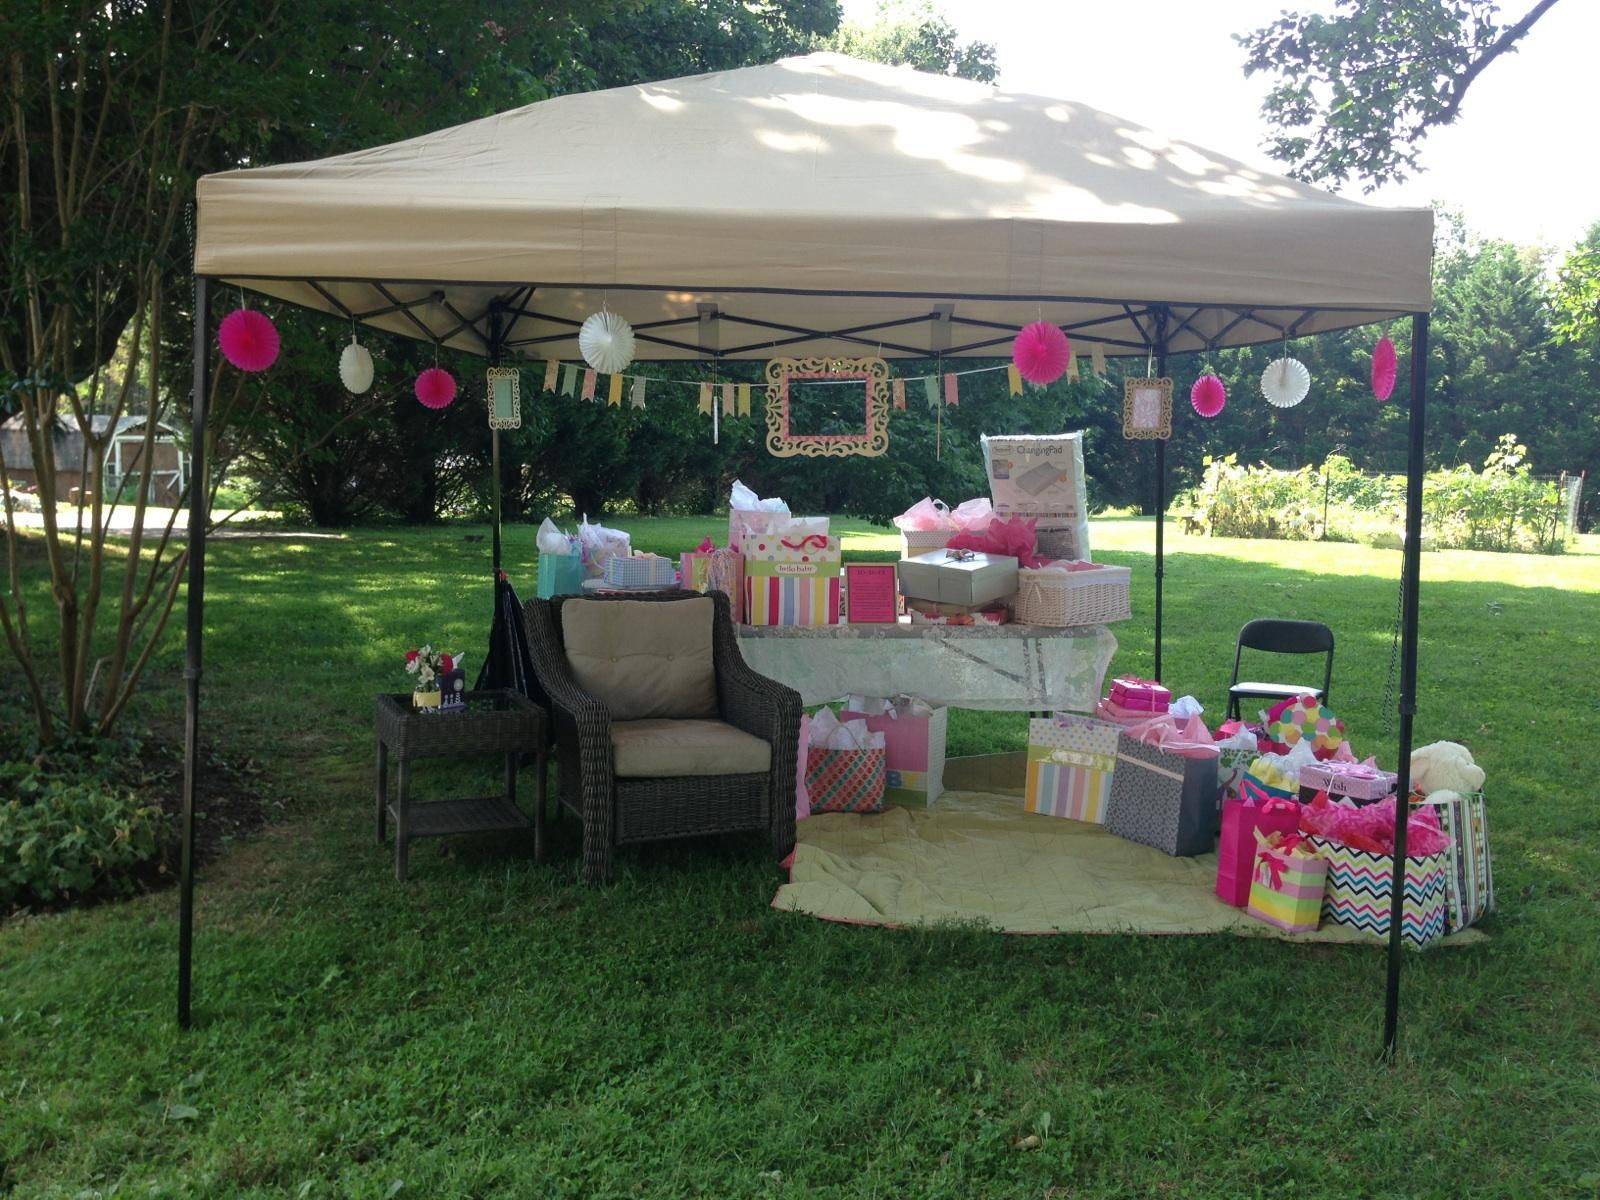 Amazing Outdoor Baby Shower. Mayve A Nice New Rocker Under There For Mommy?